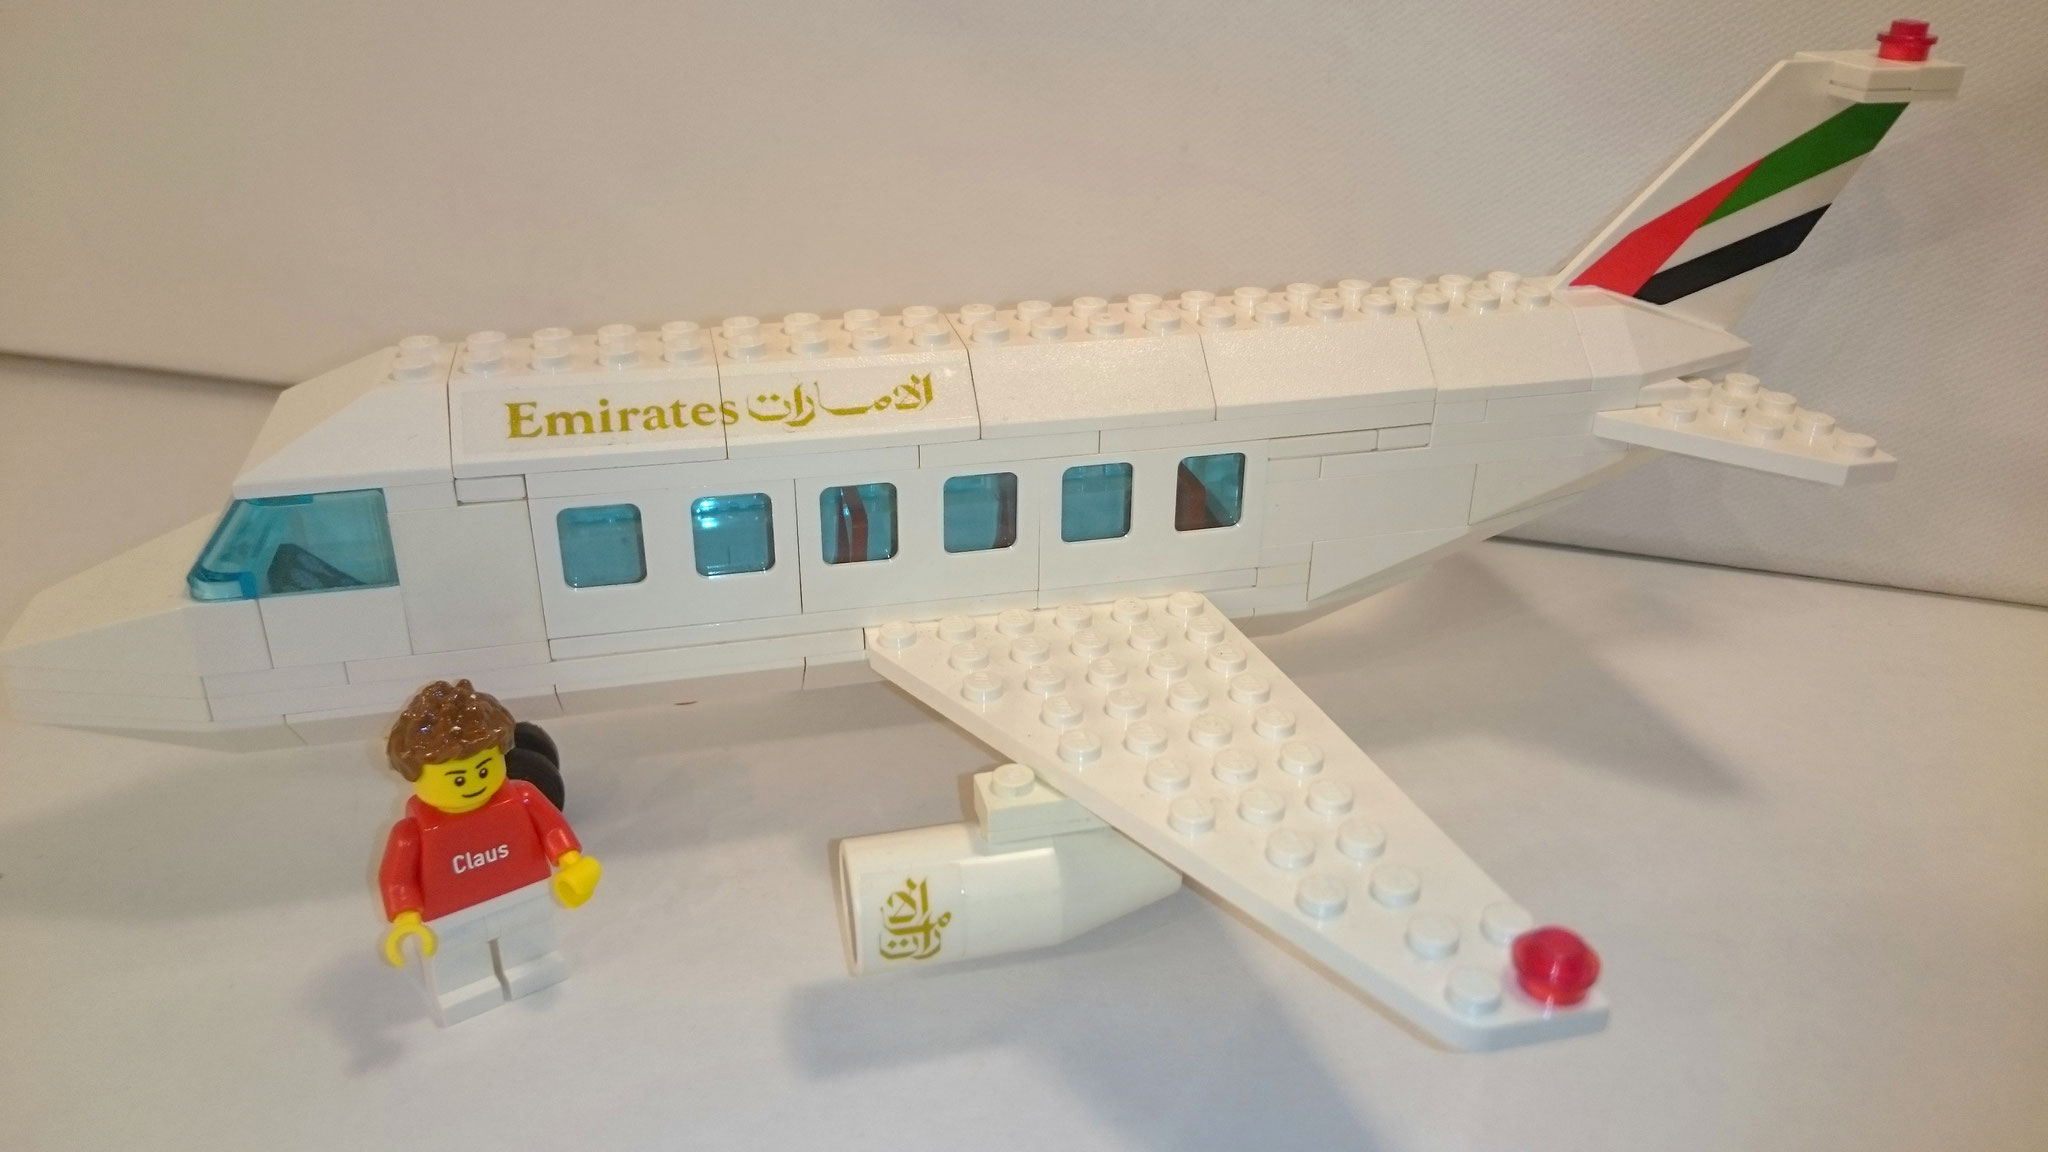 1973 - Emirates Airliner